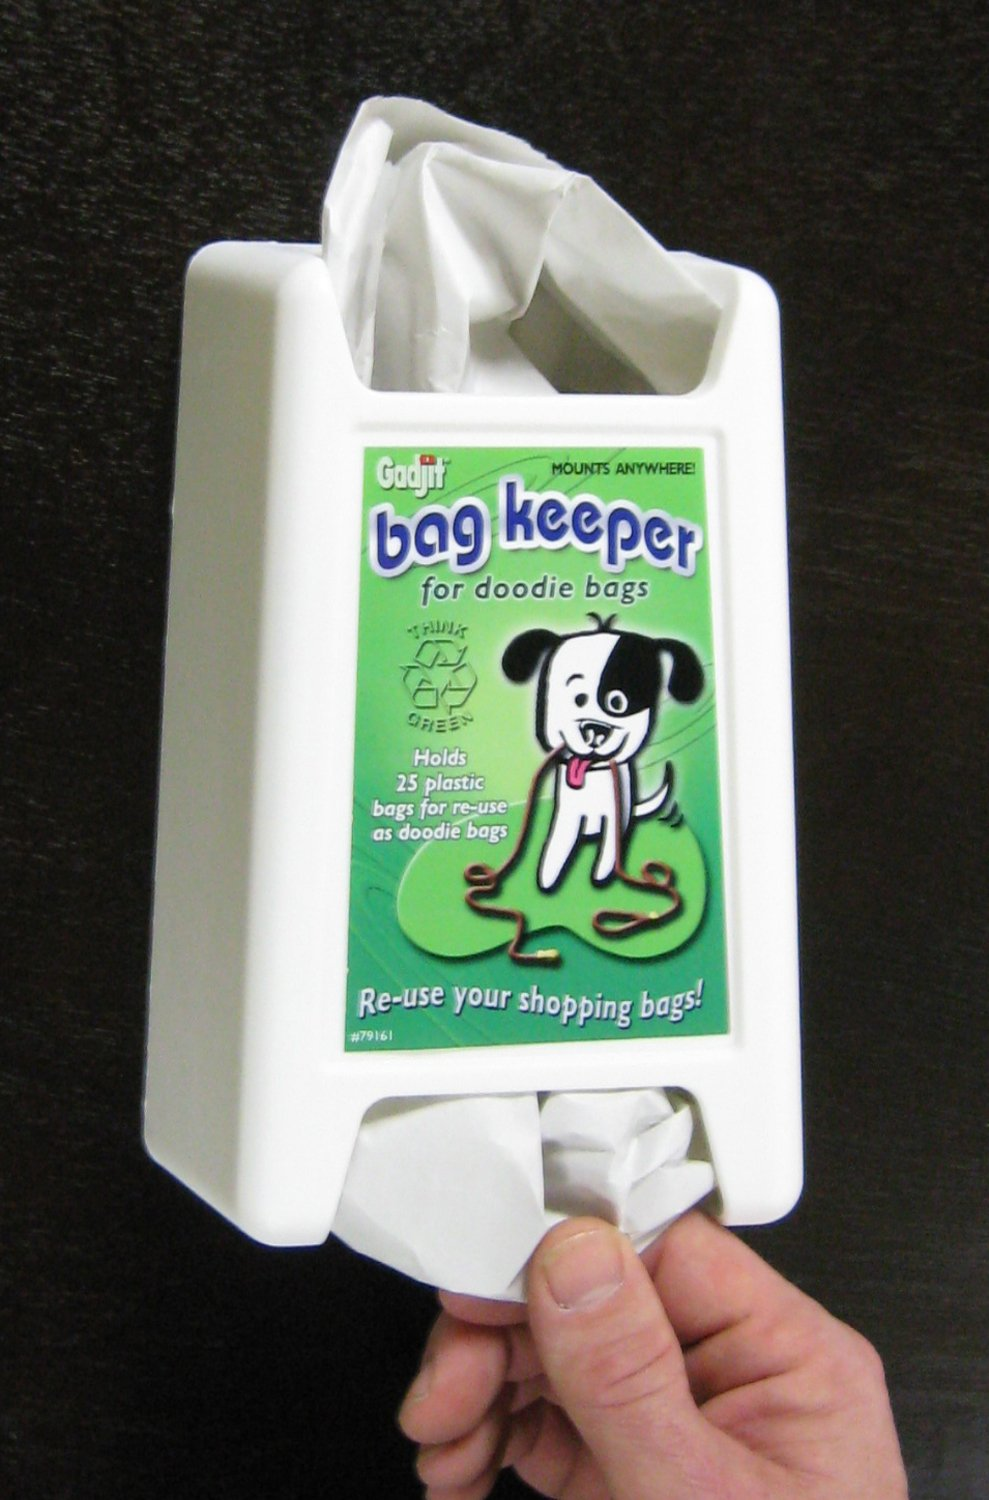 Plastic bag keeper - Amazon Com Doodie Dog Poop Plastic Bag Keeper Plastic Storage Unit That Holds 20 Reusable Plastic Grocery Bags And Dispenses Them One At A Time